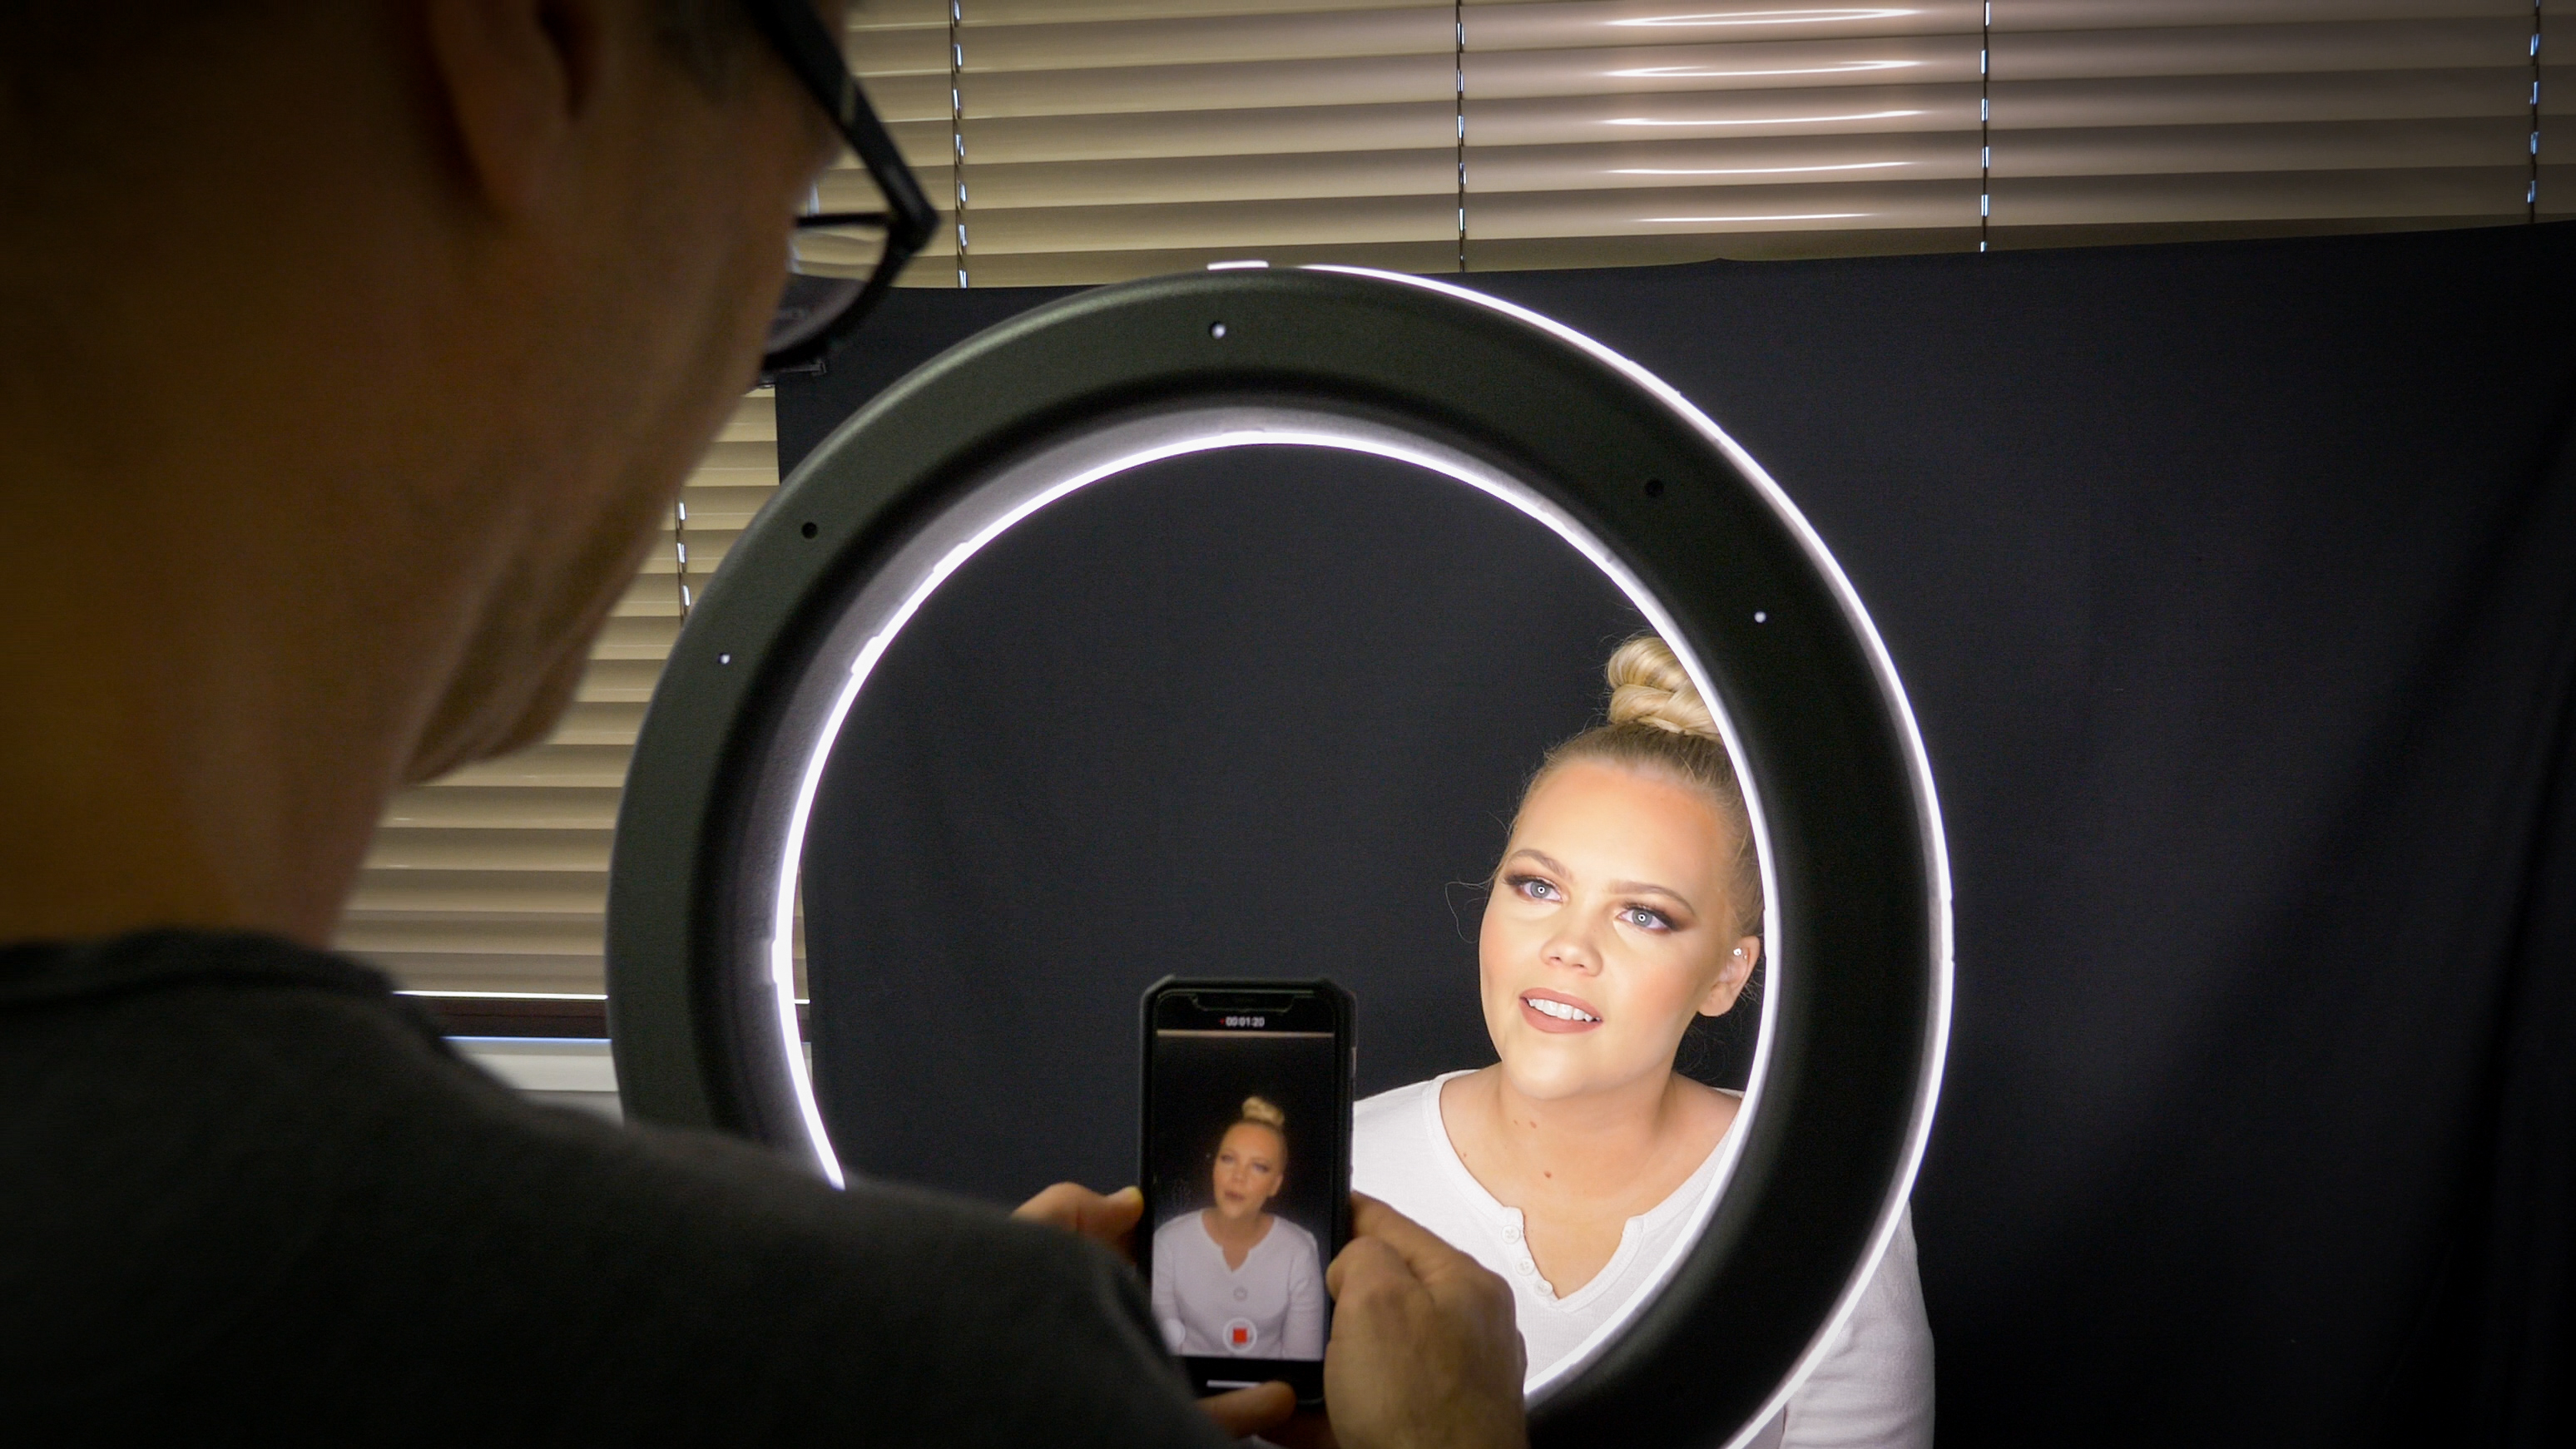 Digital Smile Design Ring Light 1